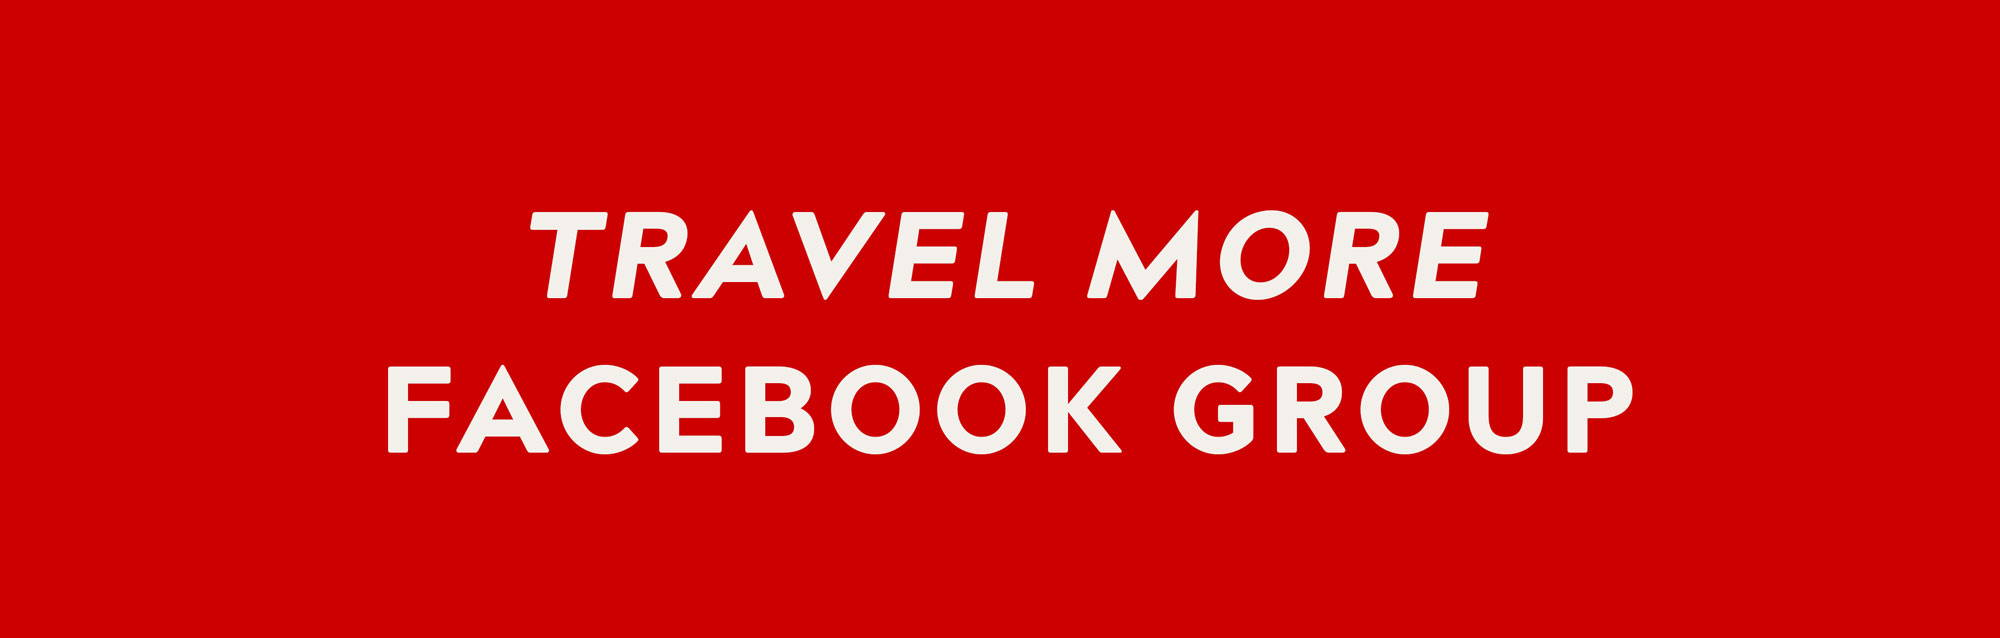 LOCTOTE Travel More Facebook group